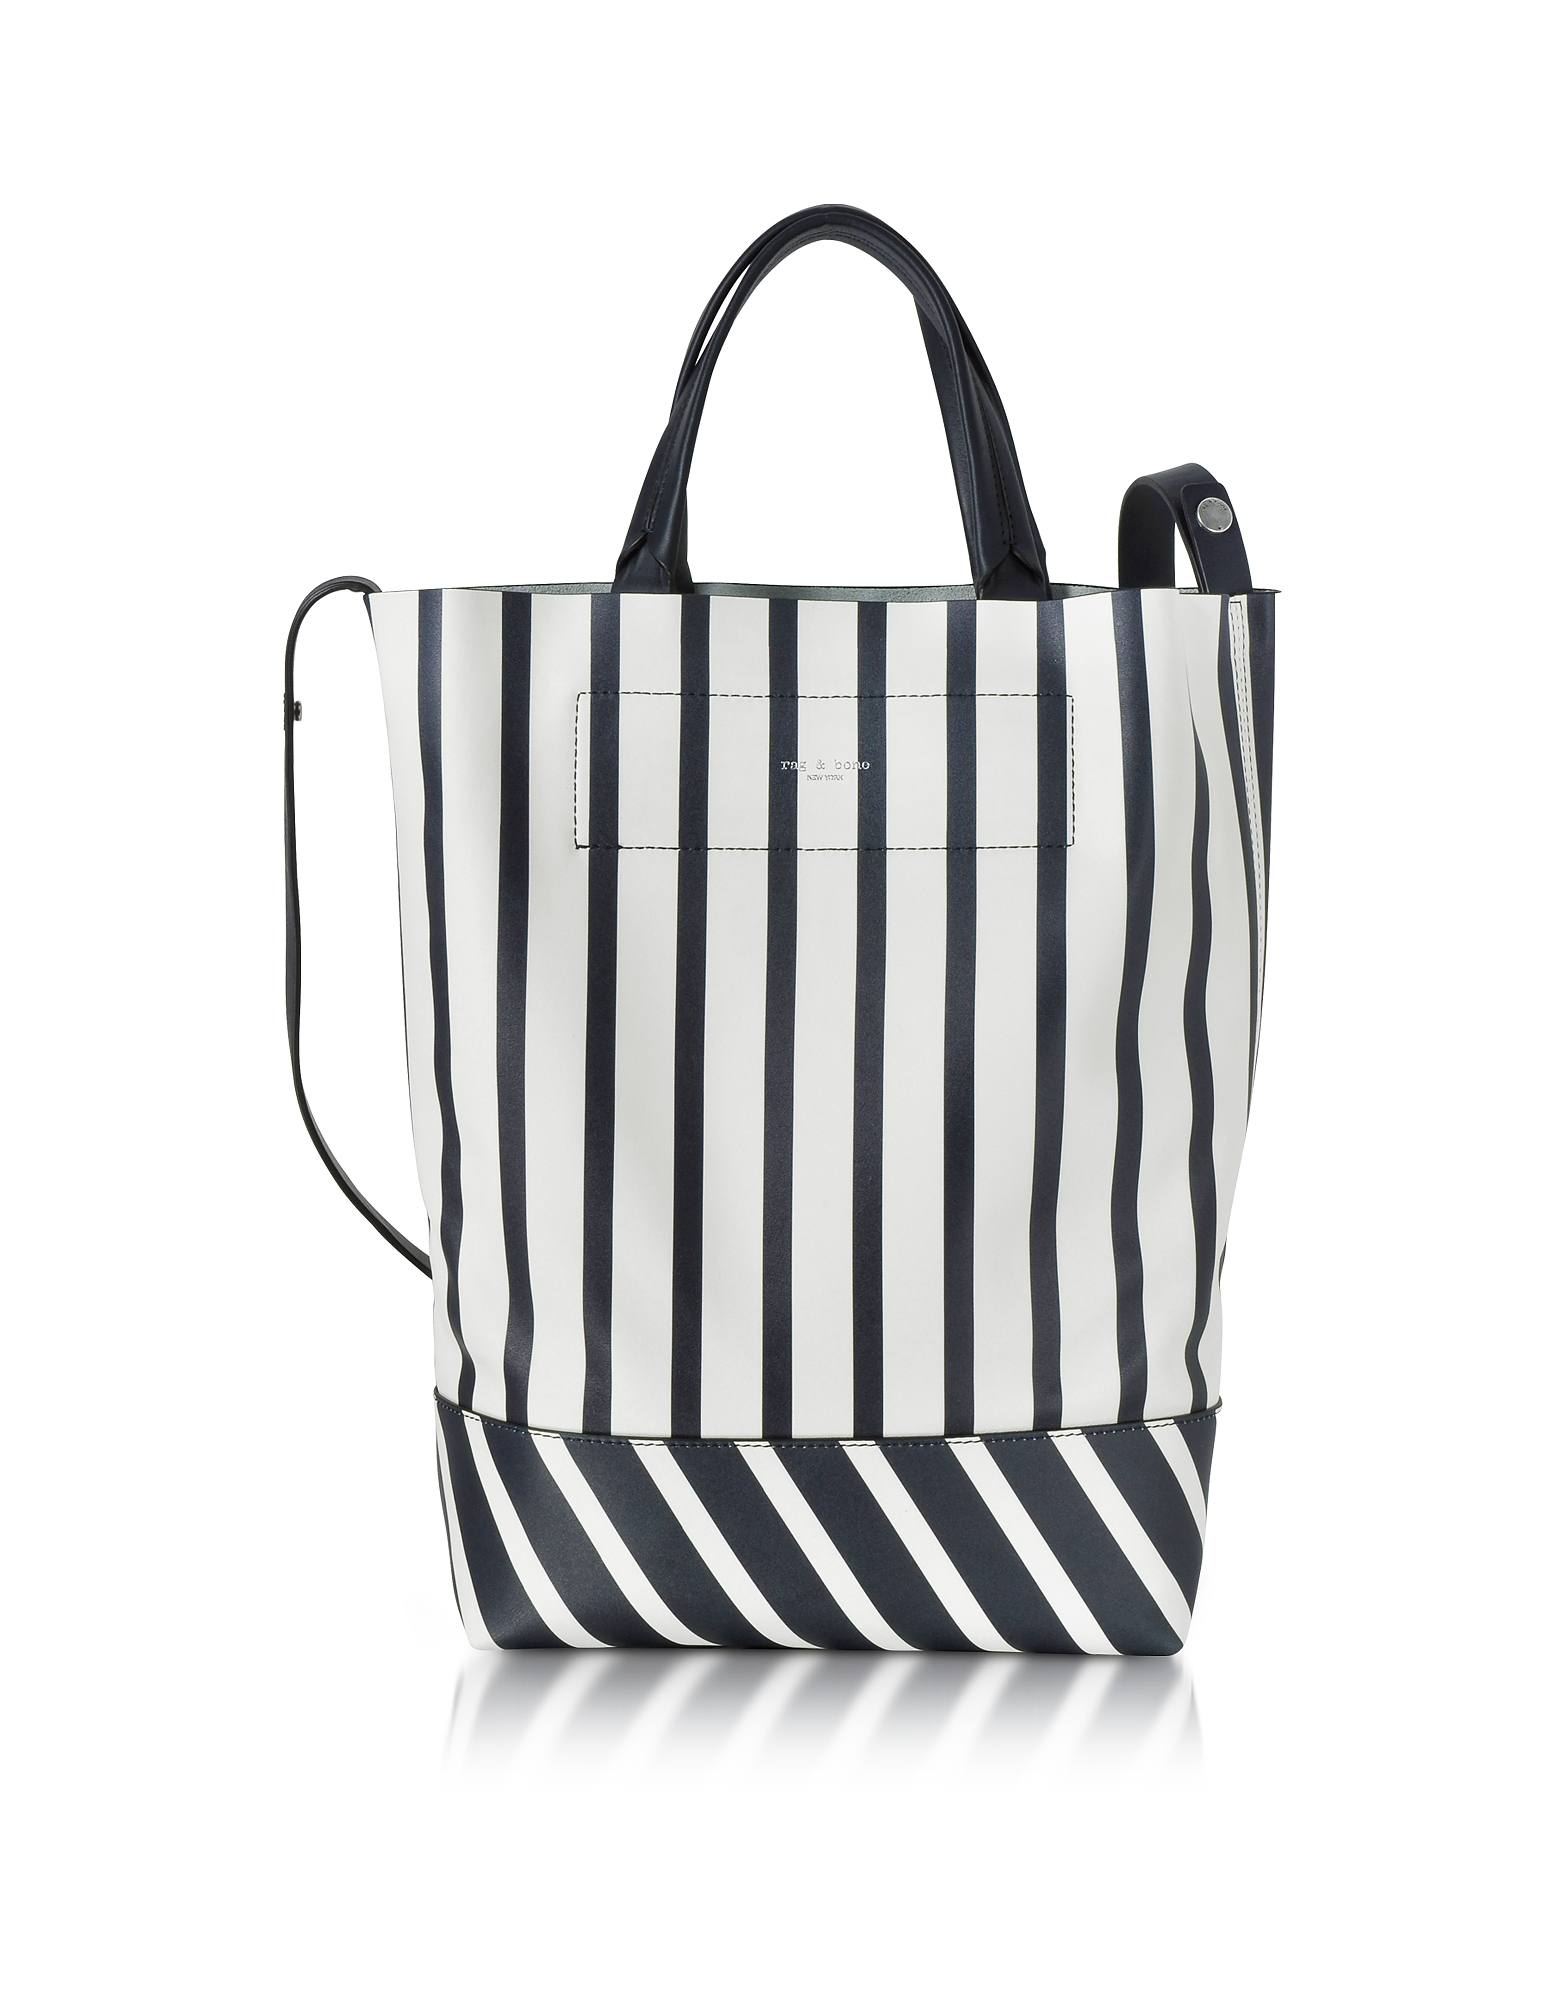 Rag & Bone Handbags, White and Navy Blue Striped Leather Walker Convertible Tote Bag